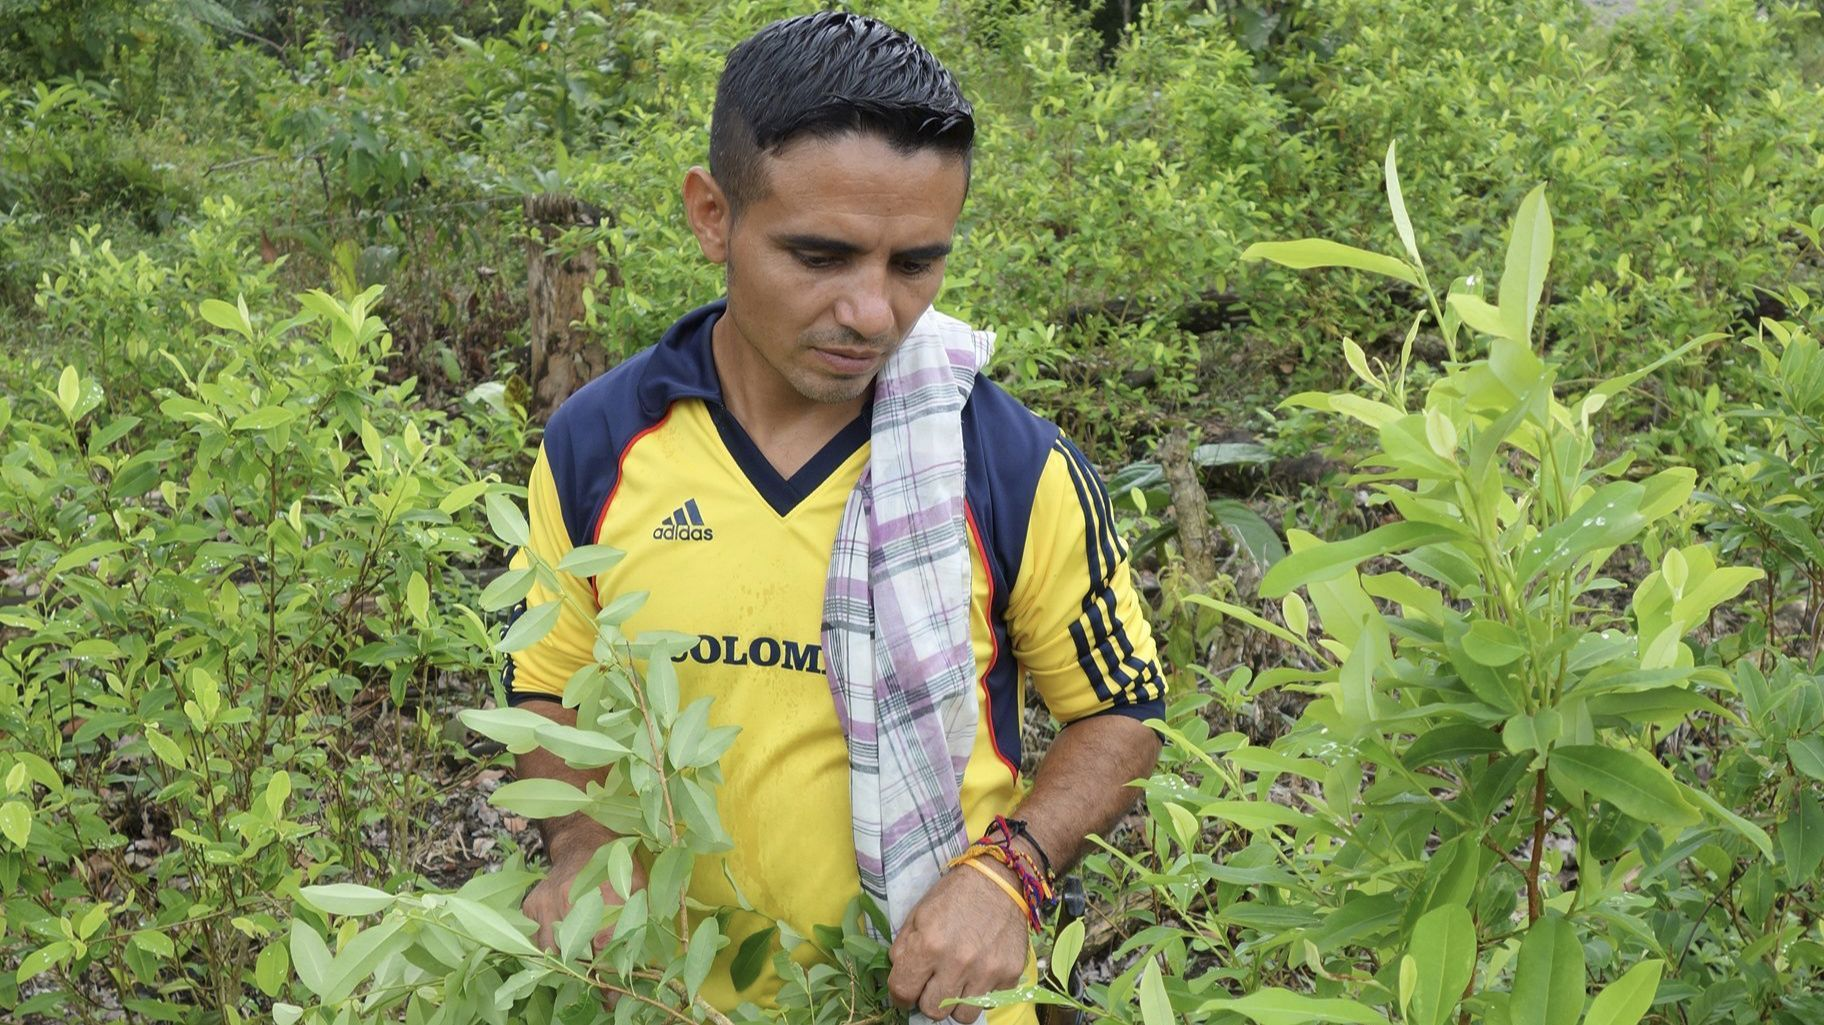 Colombian coca farmers, facing a threat to their livelihood, resist